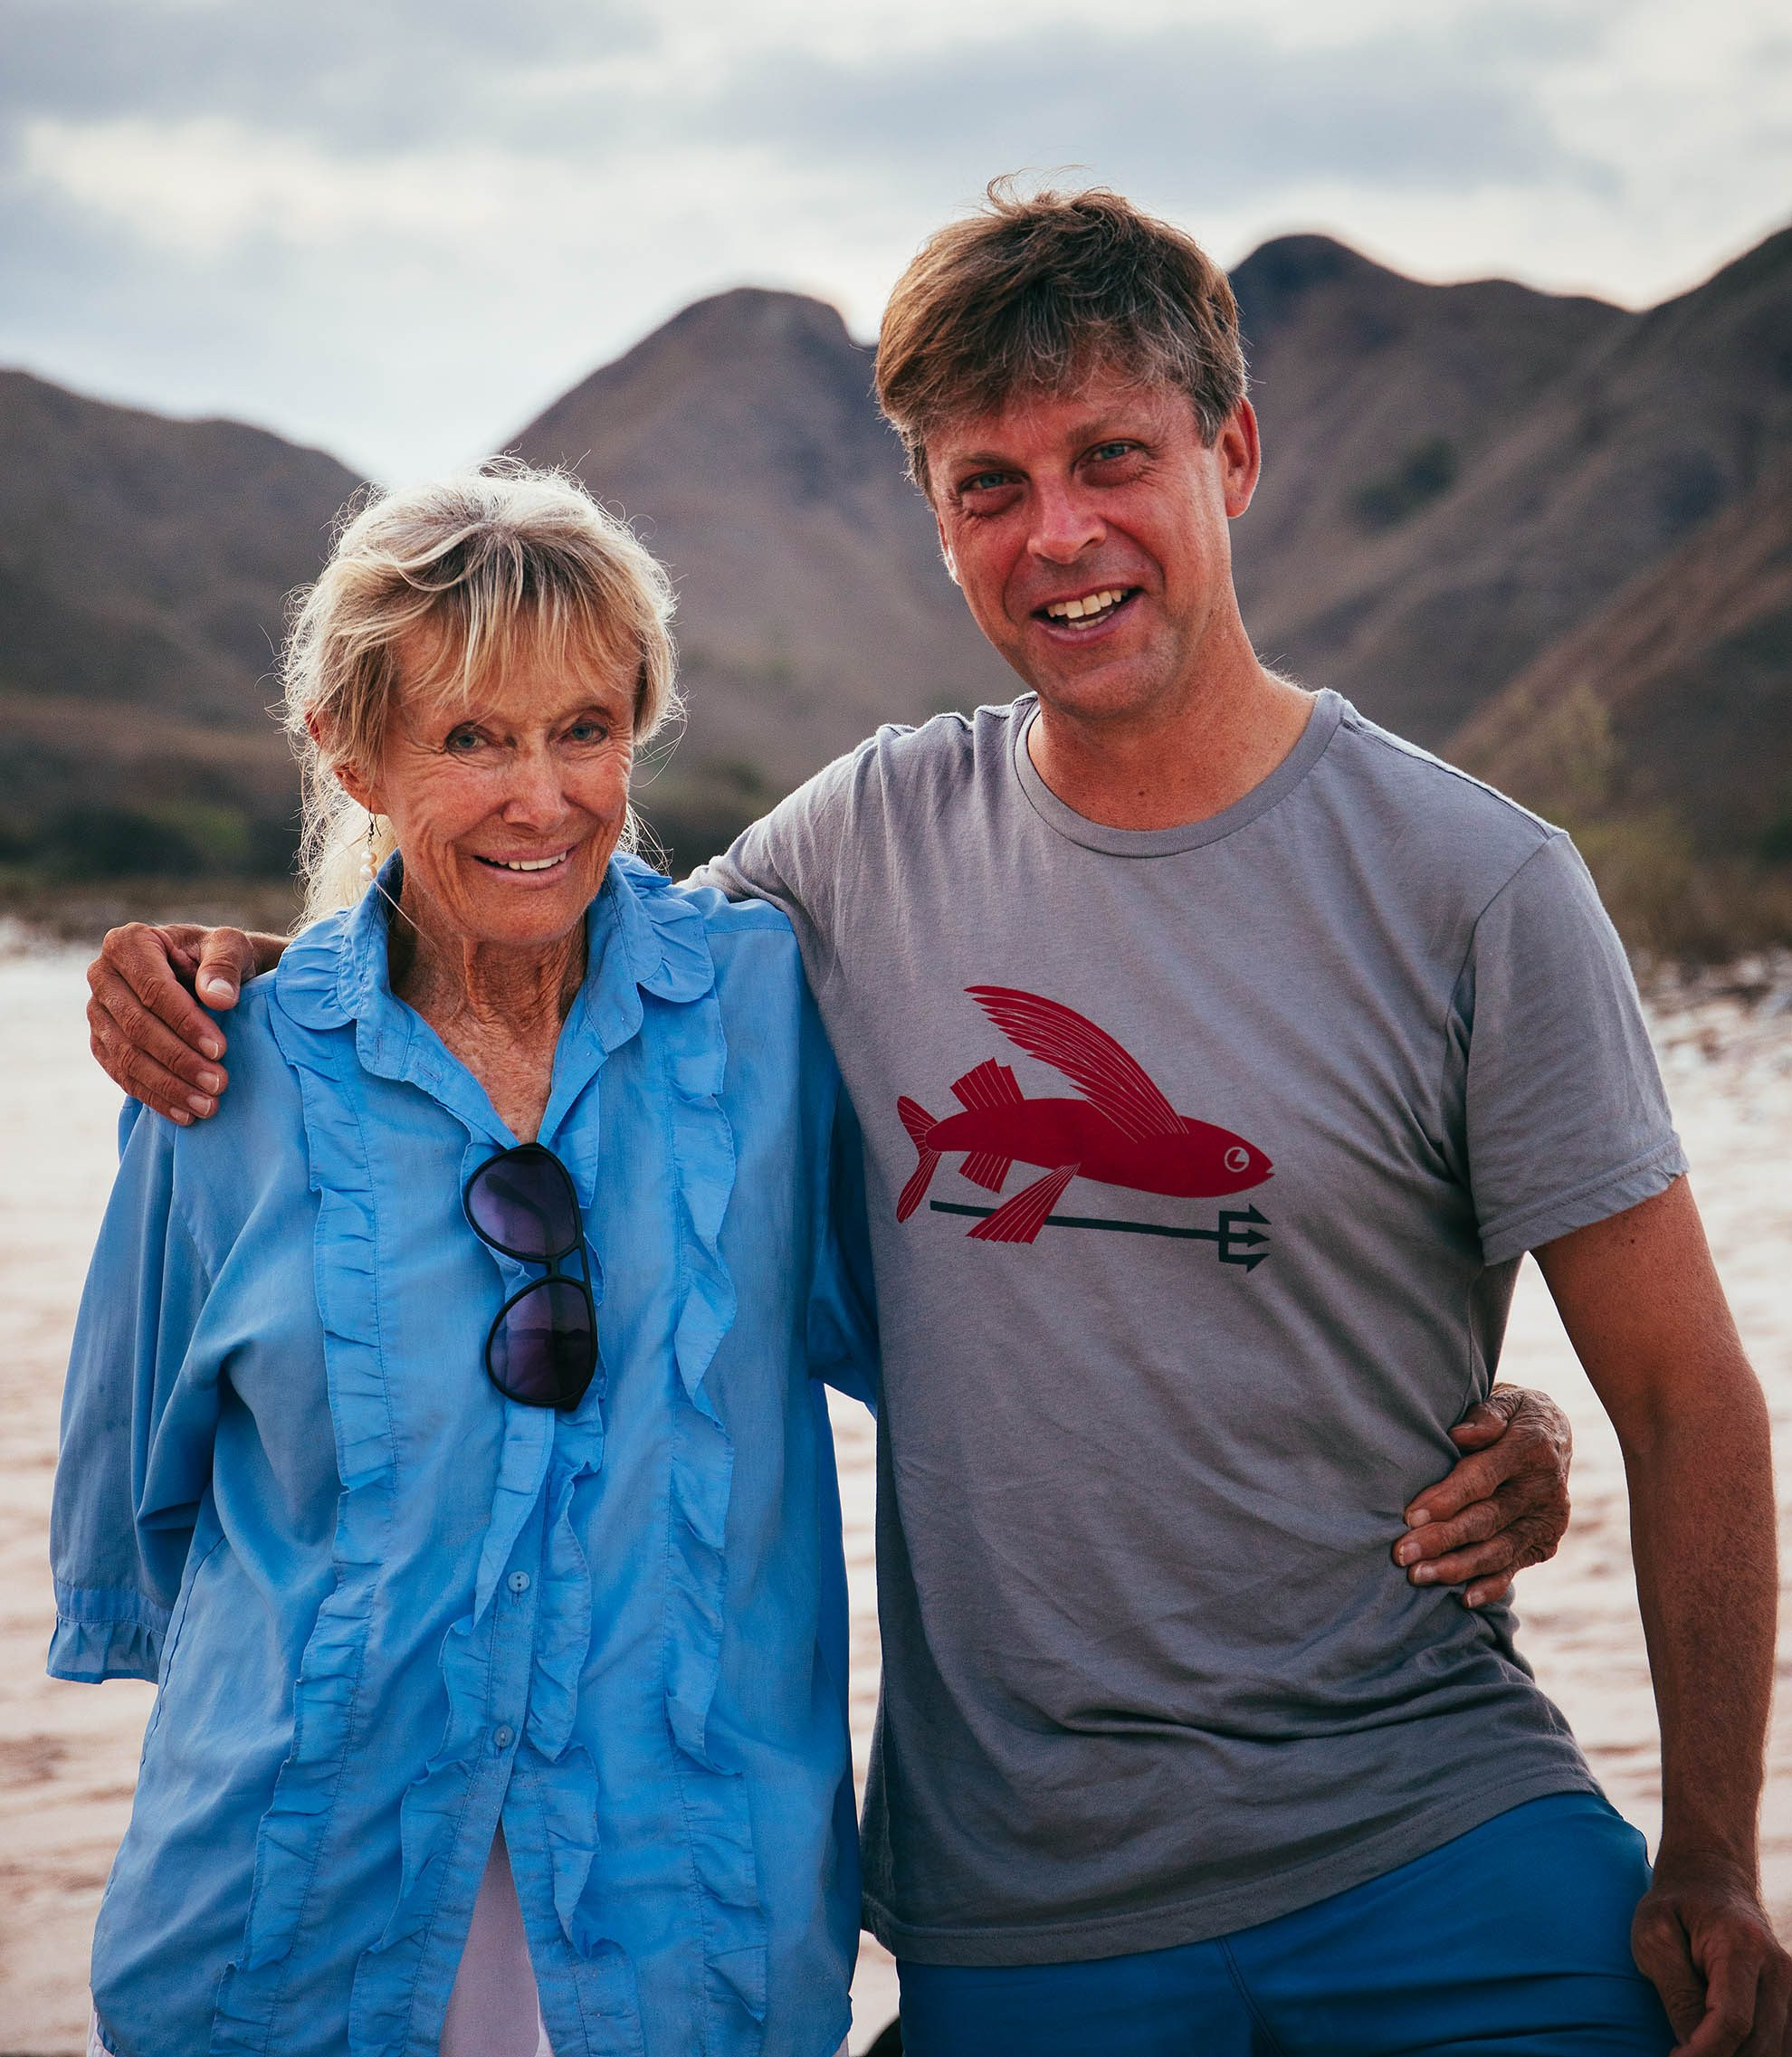 Diving Komodo with Valerie Taylor on the Seven Seas